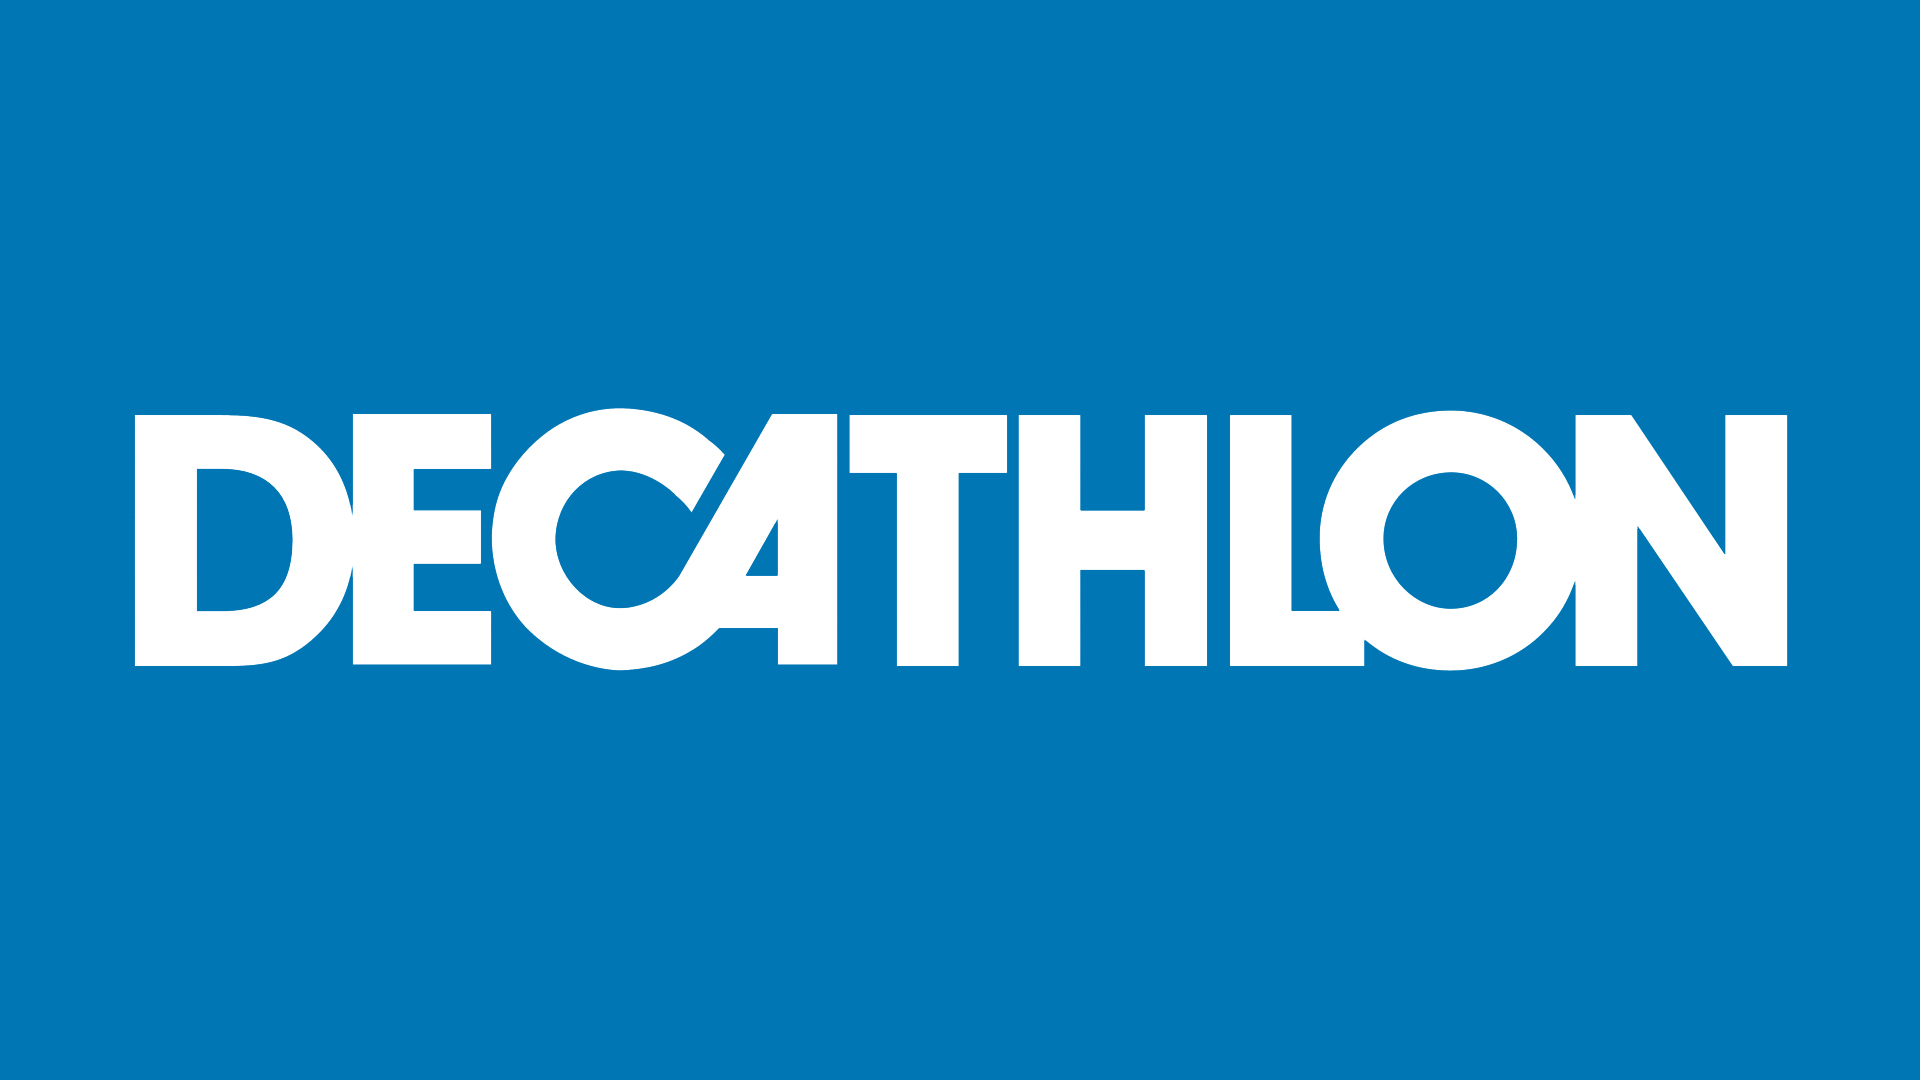 Comment contacter Decathlon ?